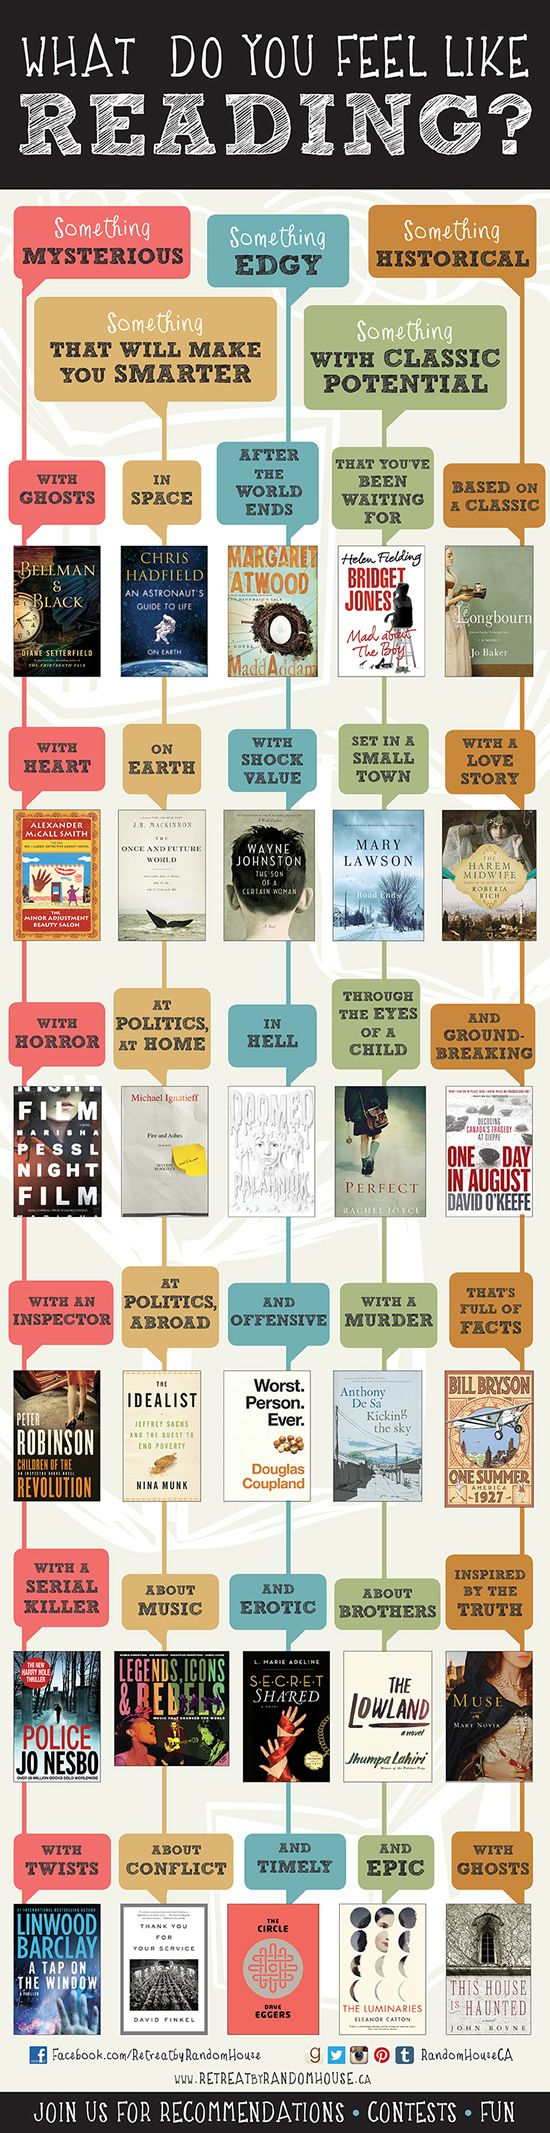 This infographic can help you to buy for your book lovers this holiday! #infographic #giftguide #booklover #christmas #holiday #gifts